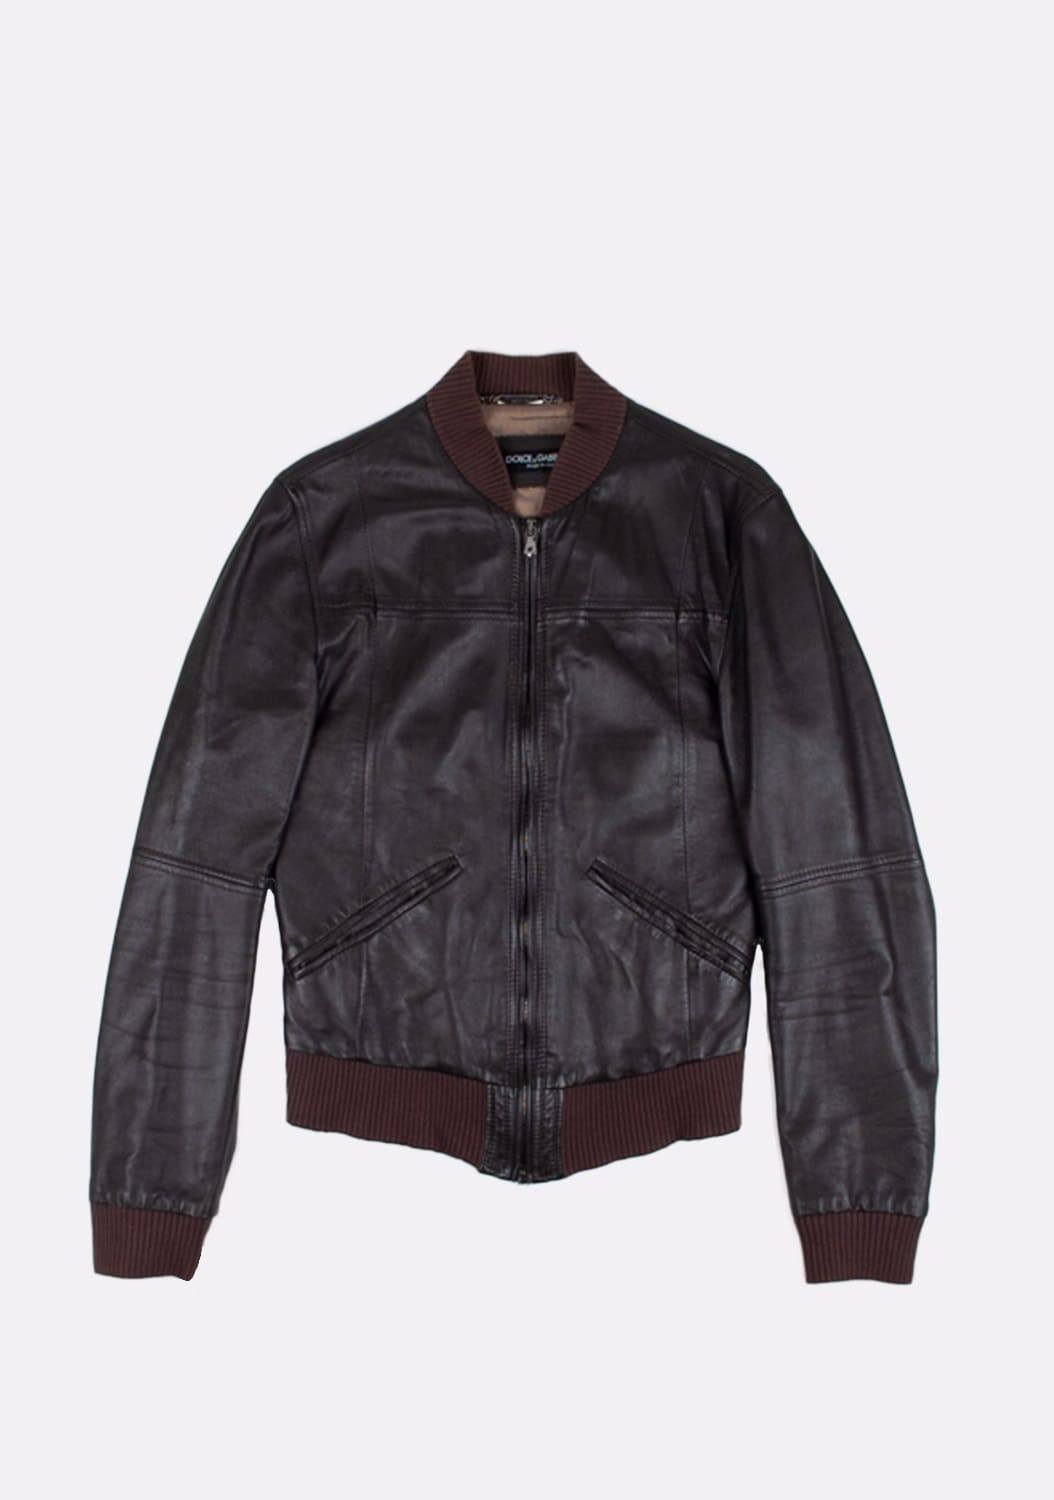 Dolce&Gabbana-Leather-Bomber-Men-Jacket-Size 46-ITA-urocklt (7)